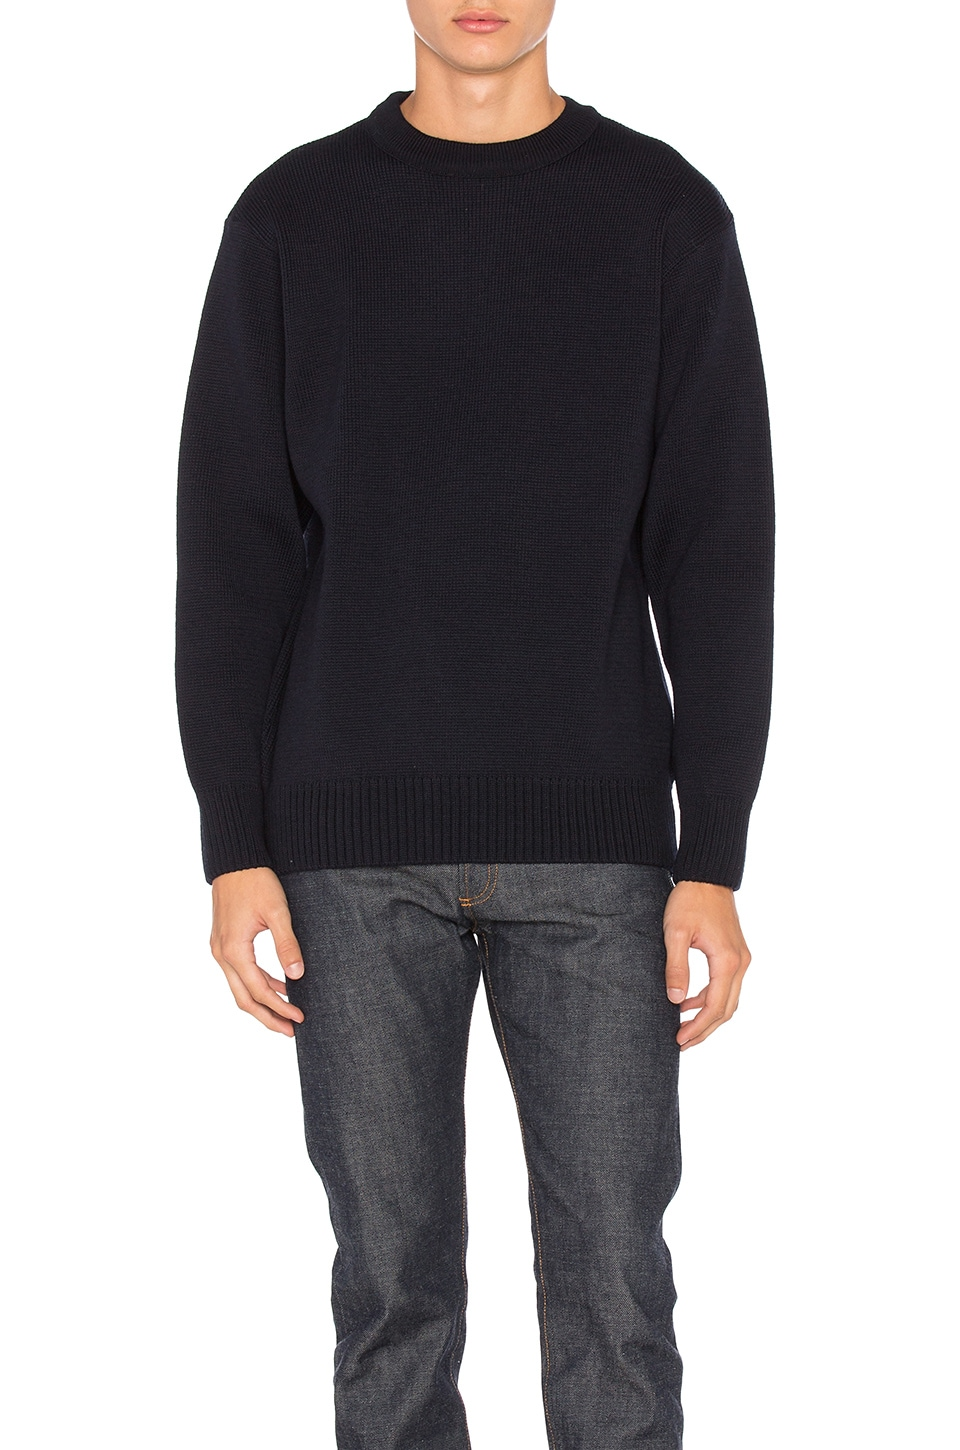 Photo of Crewneck Guide Sweater by Filson men clothes